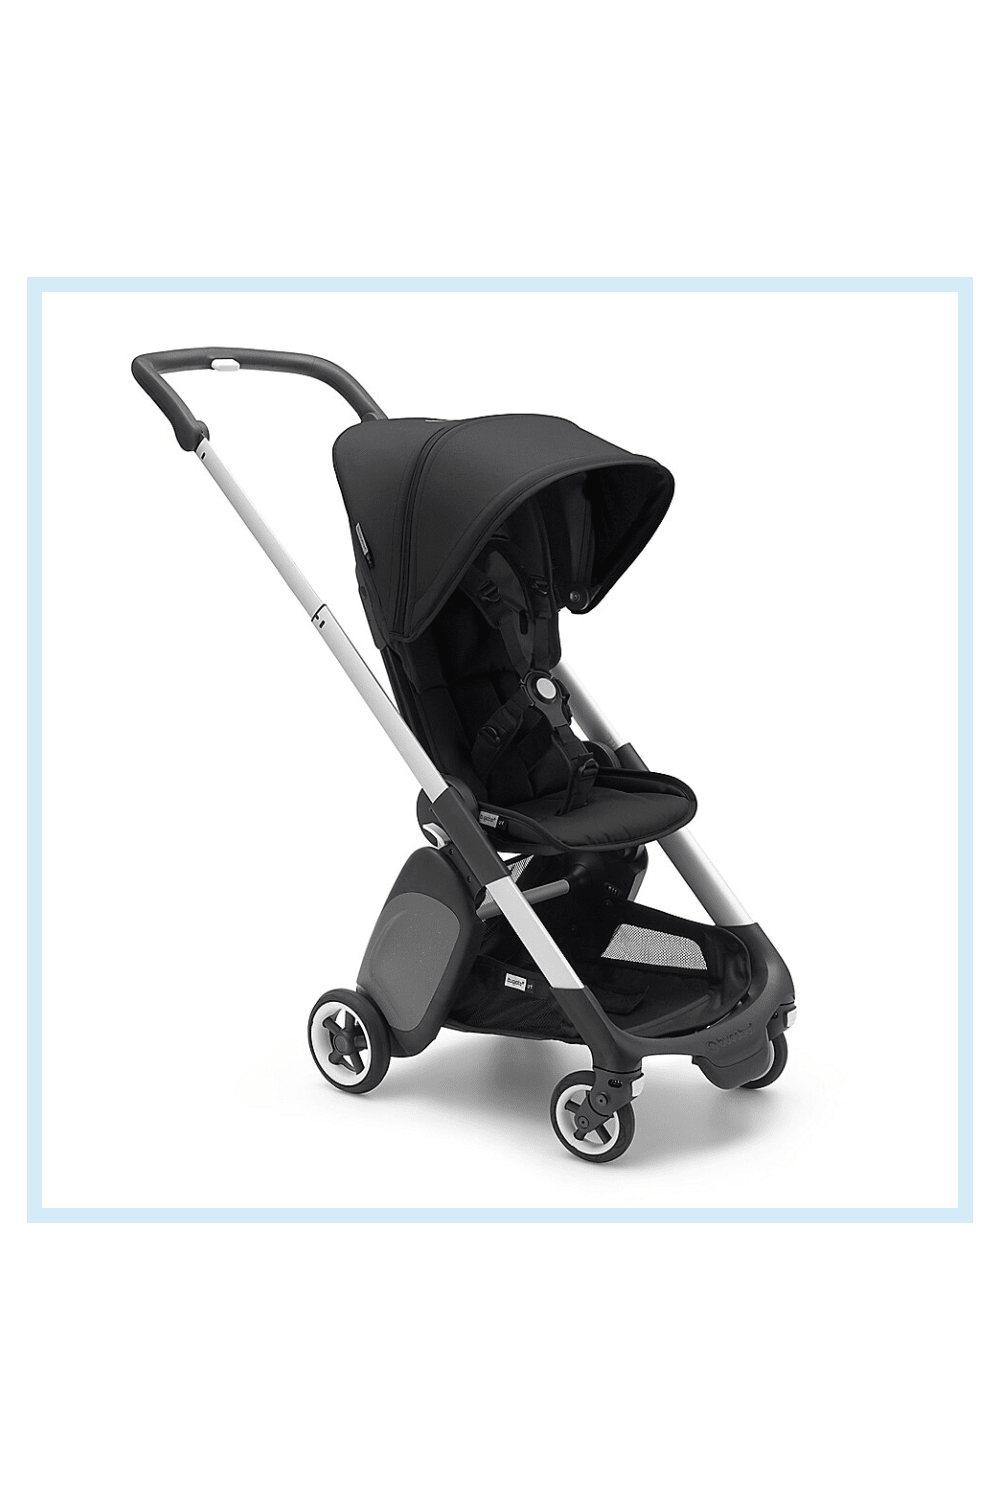 Bugaboo Ant Compact Stroller in 2020 Compact strollers